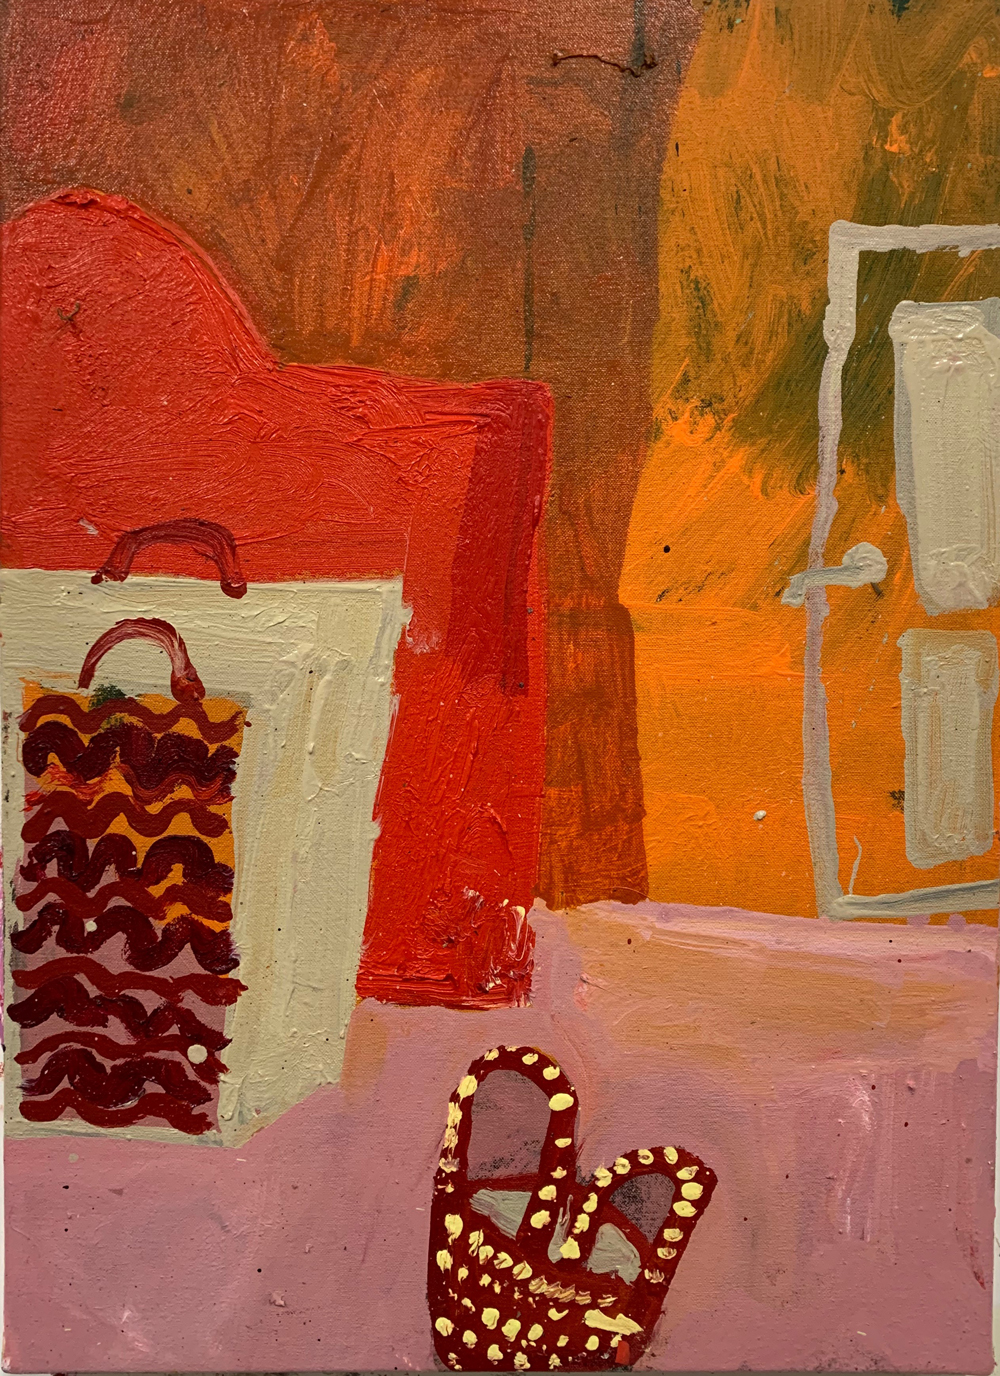 Florence-Hutchings,-The-Orange-Wallpaper,-2020,-oil-paint-on-canvas.-41x56cm 2